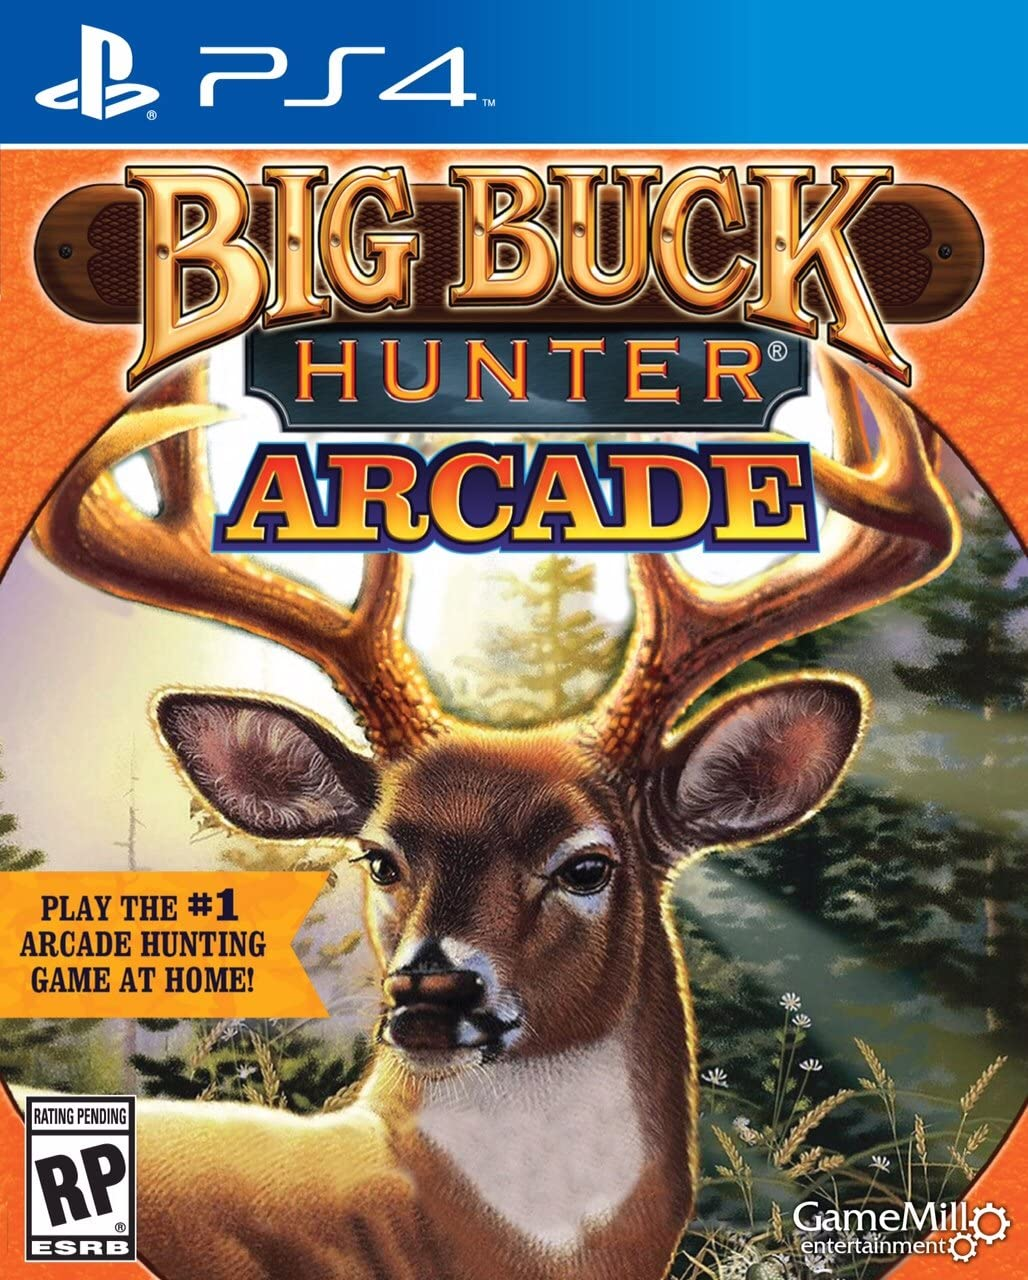 Big Buck Hunter Ps4 Playstation 4 Game Mill To Shoot A Deer With Rifle Diagram I Have Two Of These Rifles And Entertainment Video Games